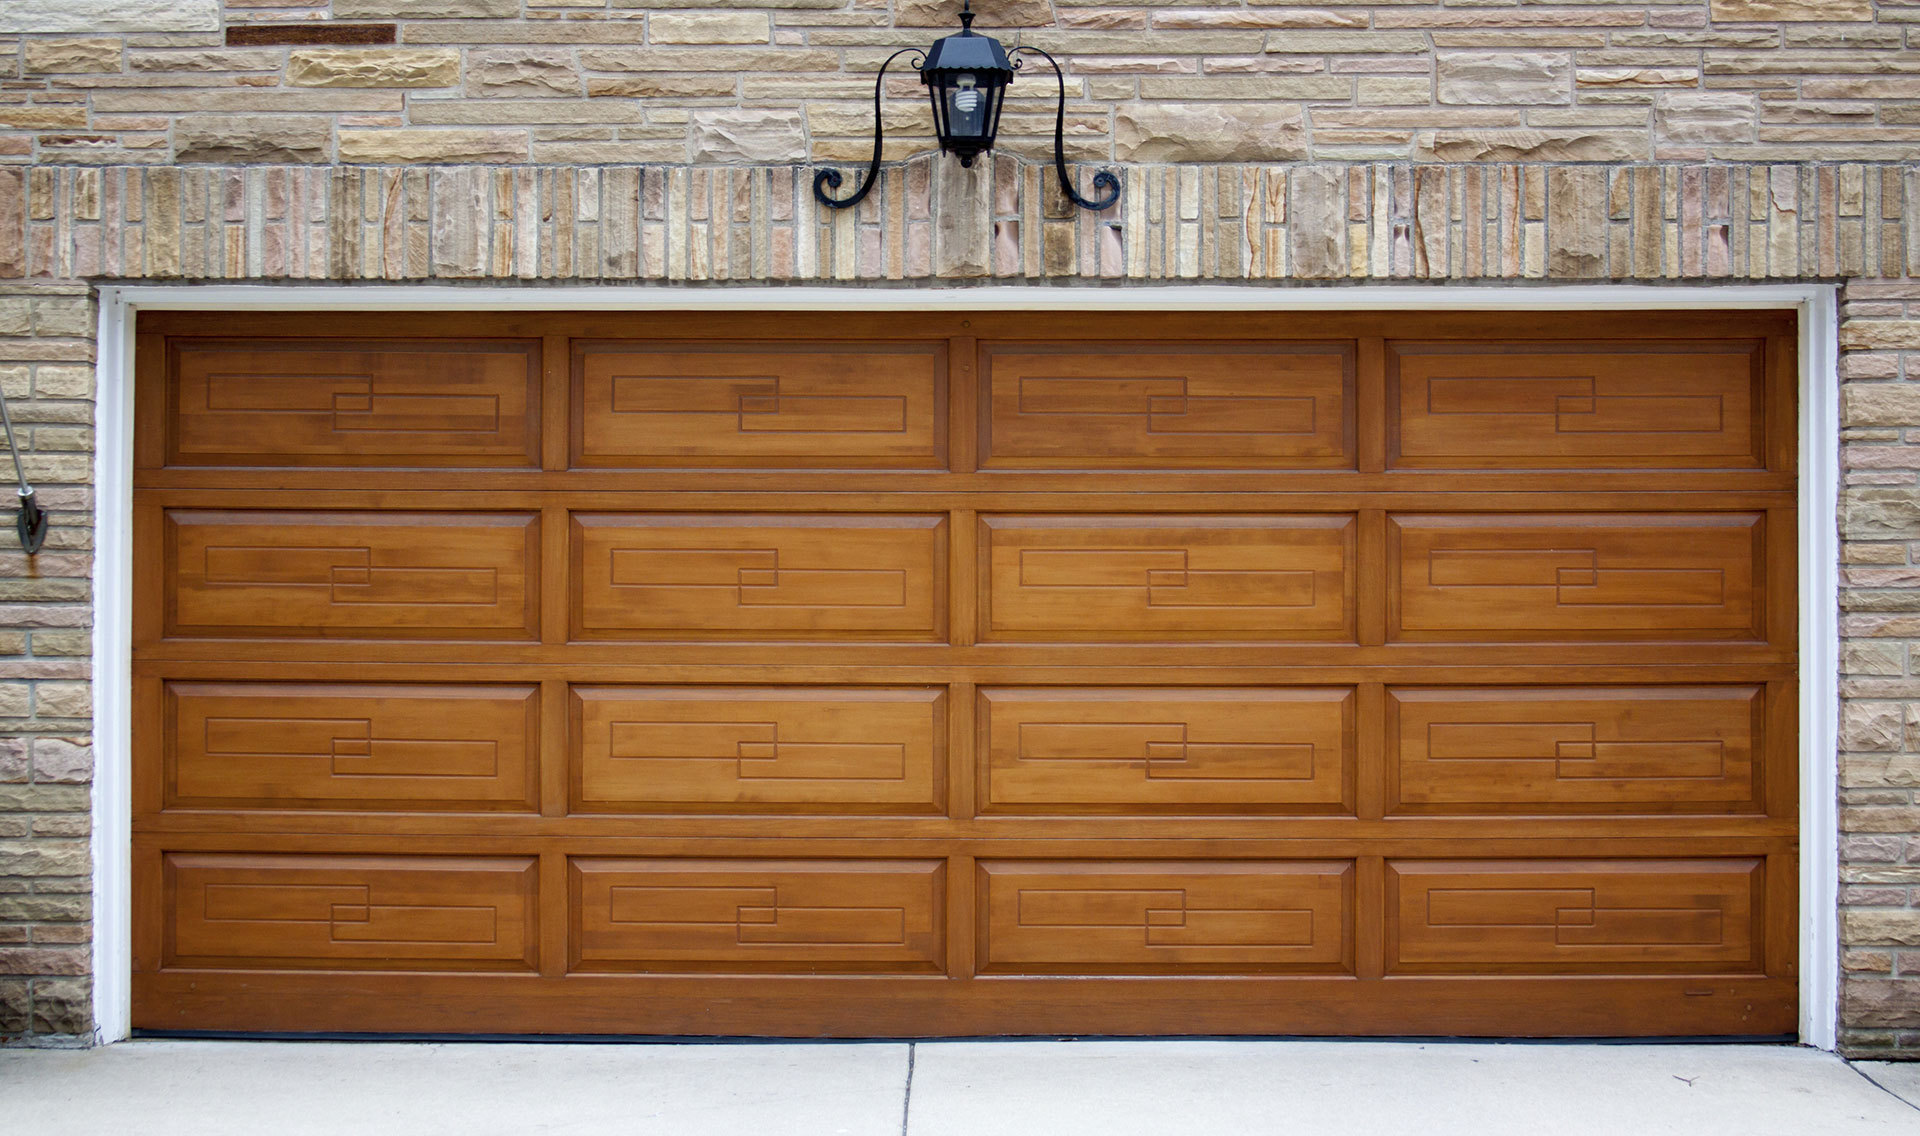 100 garage door parts san antonio garage ideas on the eye c